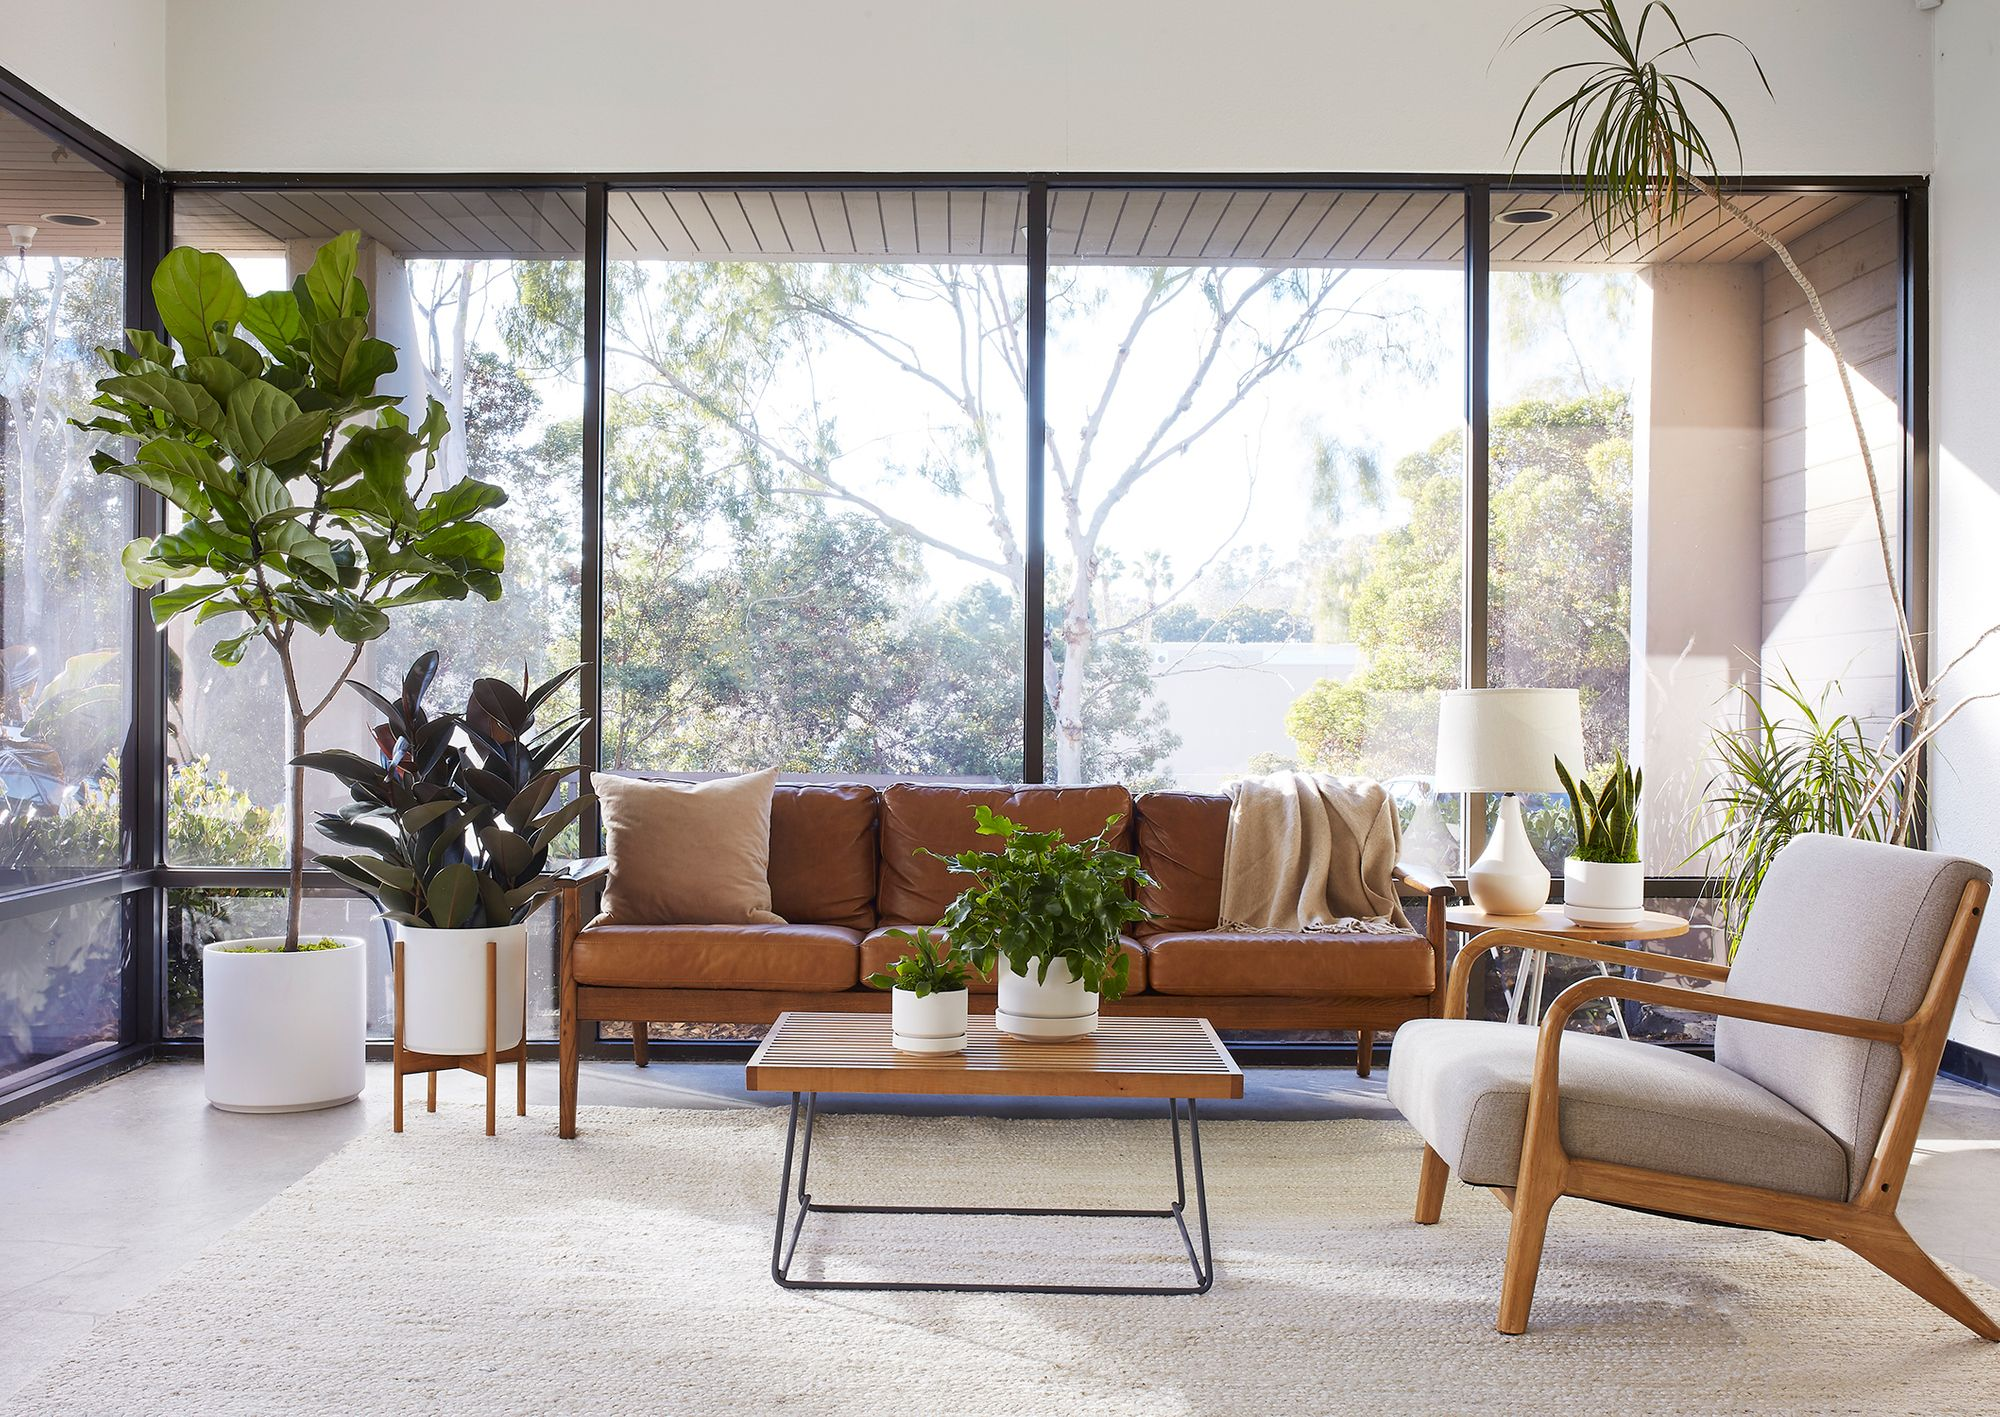 6 Characteristics Of Mid Century Modern Style And How To Use Them